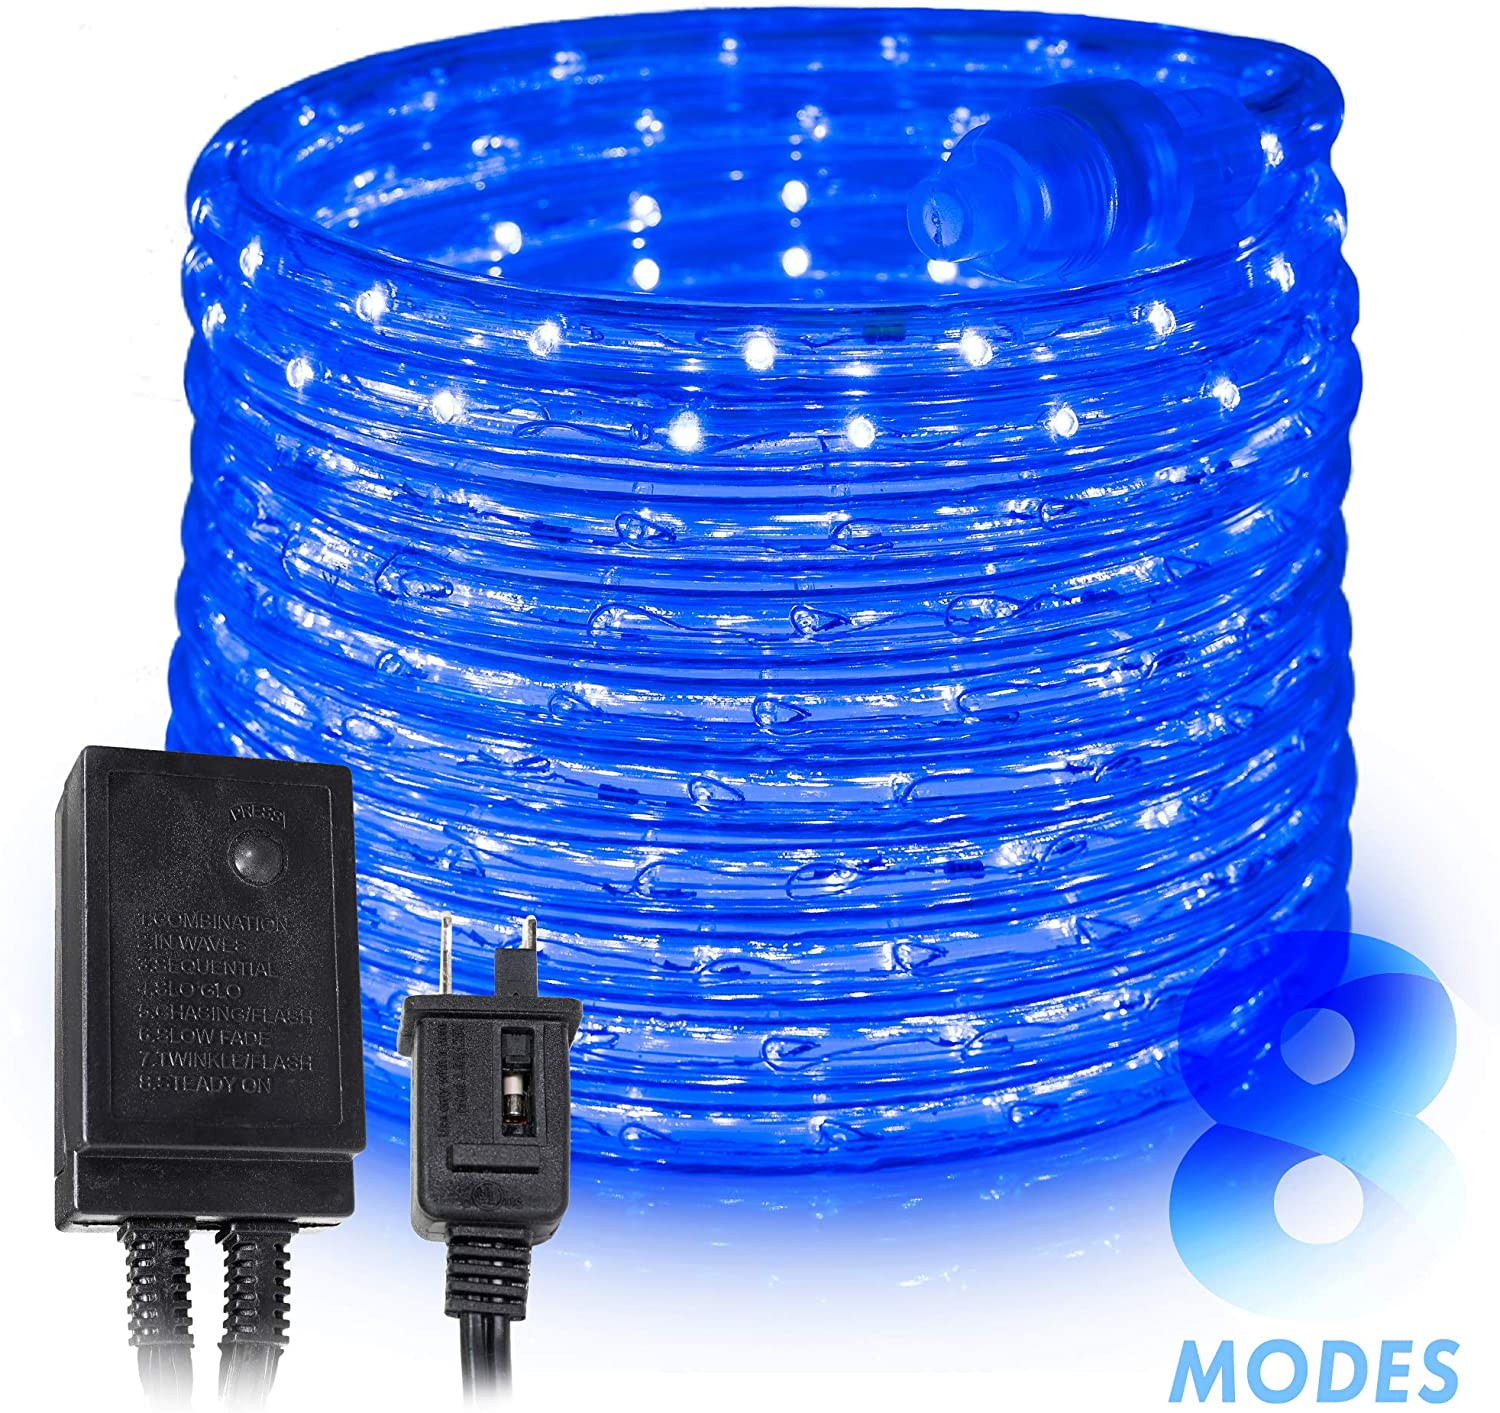 West Ivory 10', 25', 60', 150' ft (10' feet) Blue LED Rope Lights w/ 8 Mode Controller 2 Wire Accent Holiday Christmas Party Decoration Lighting | UL Certified